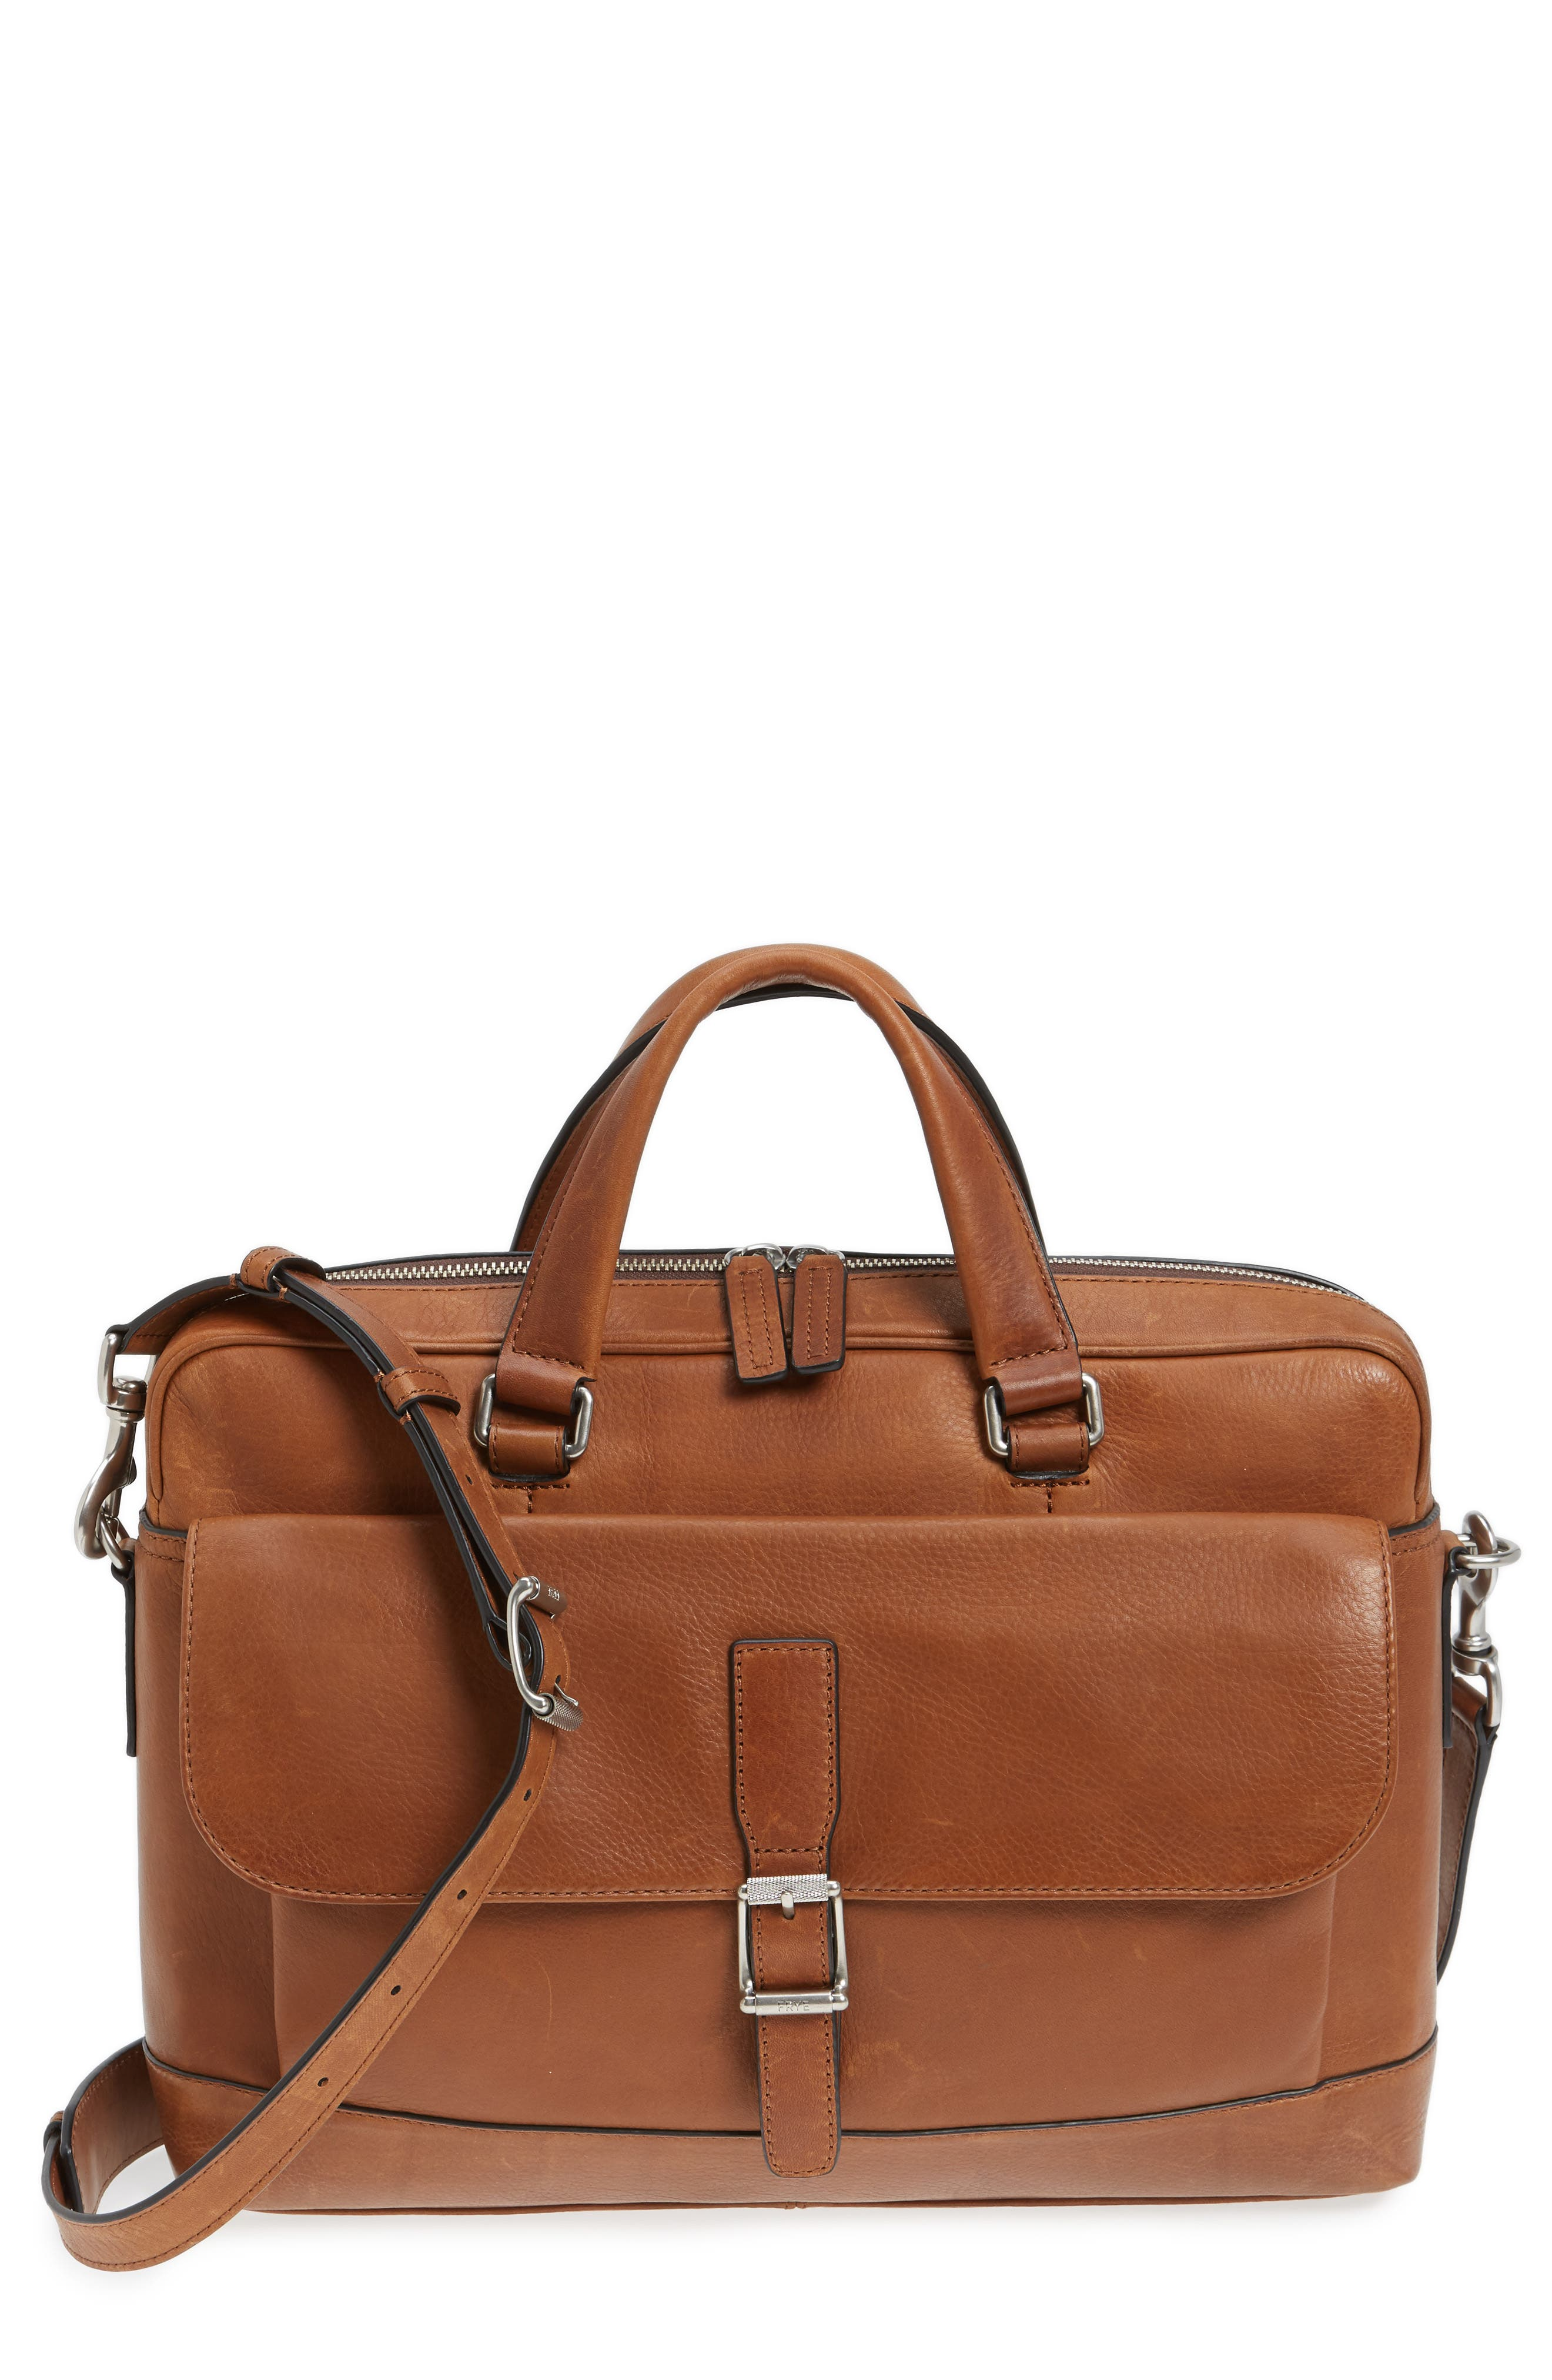 FRYE, Oliver Leather Briefcase, Main thumbnail 1, color, 235